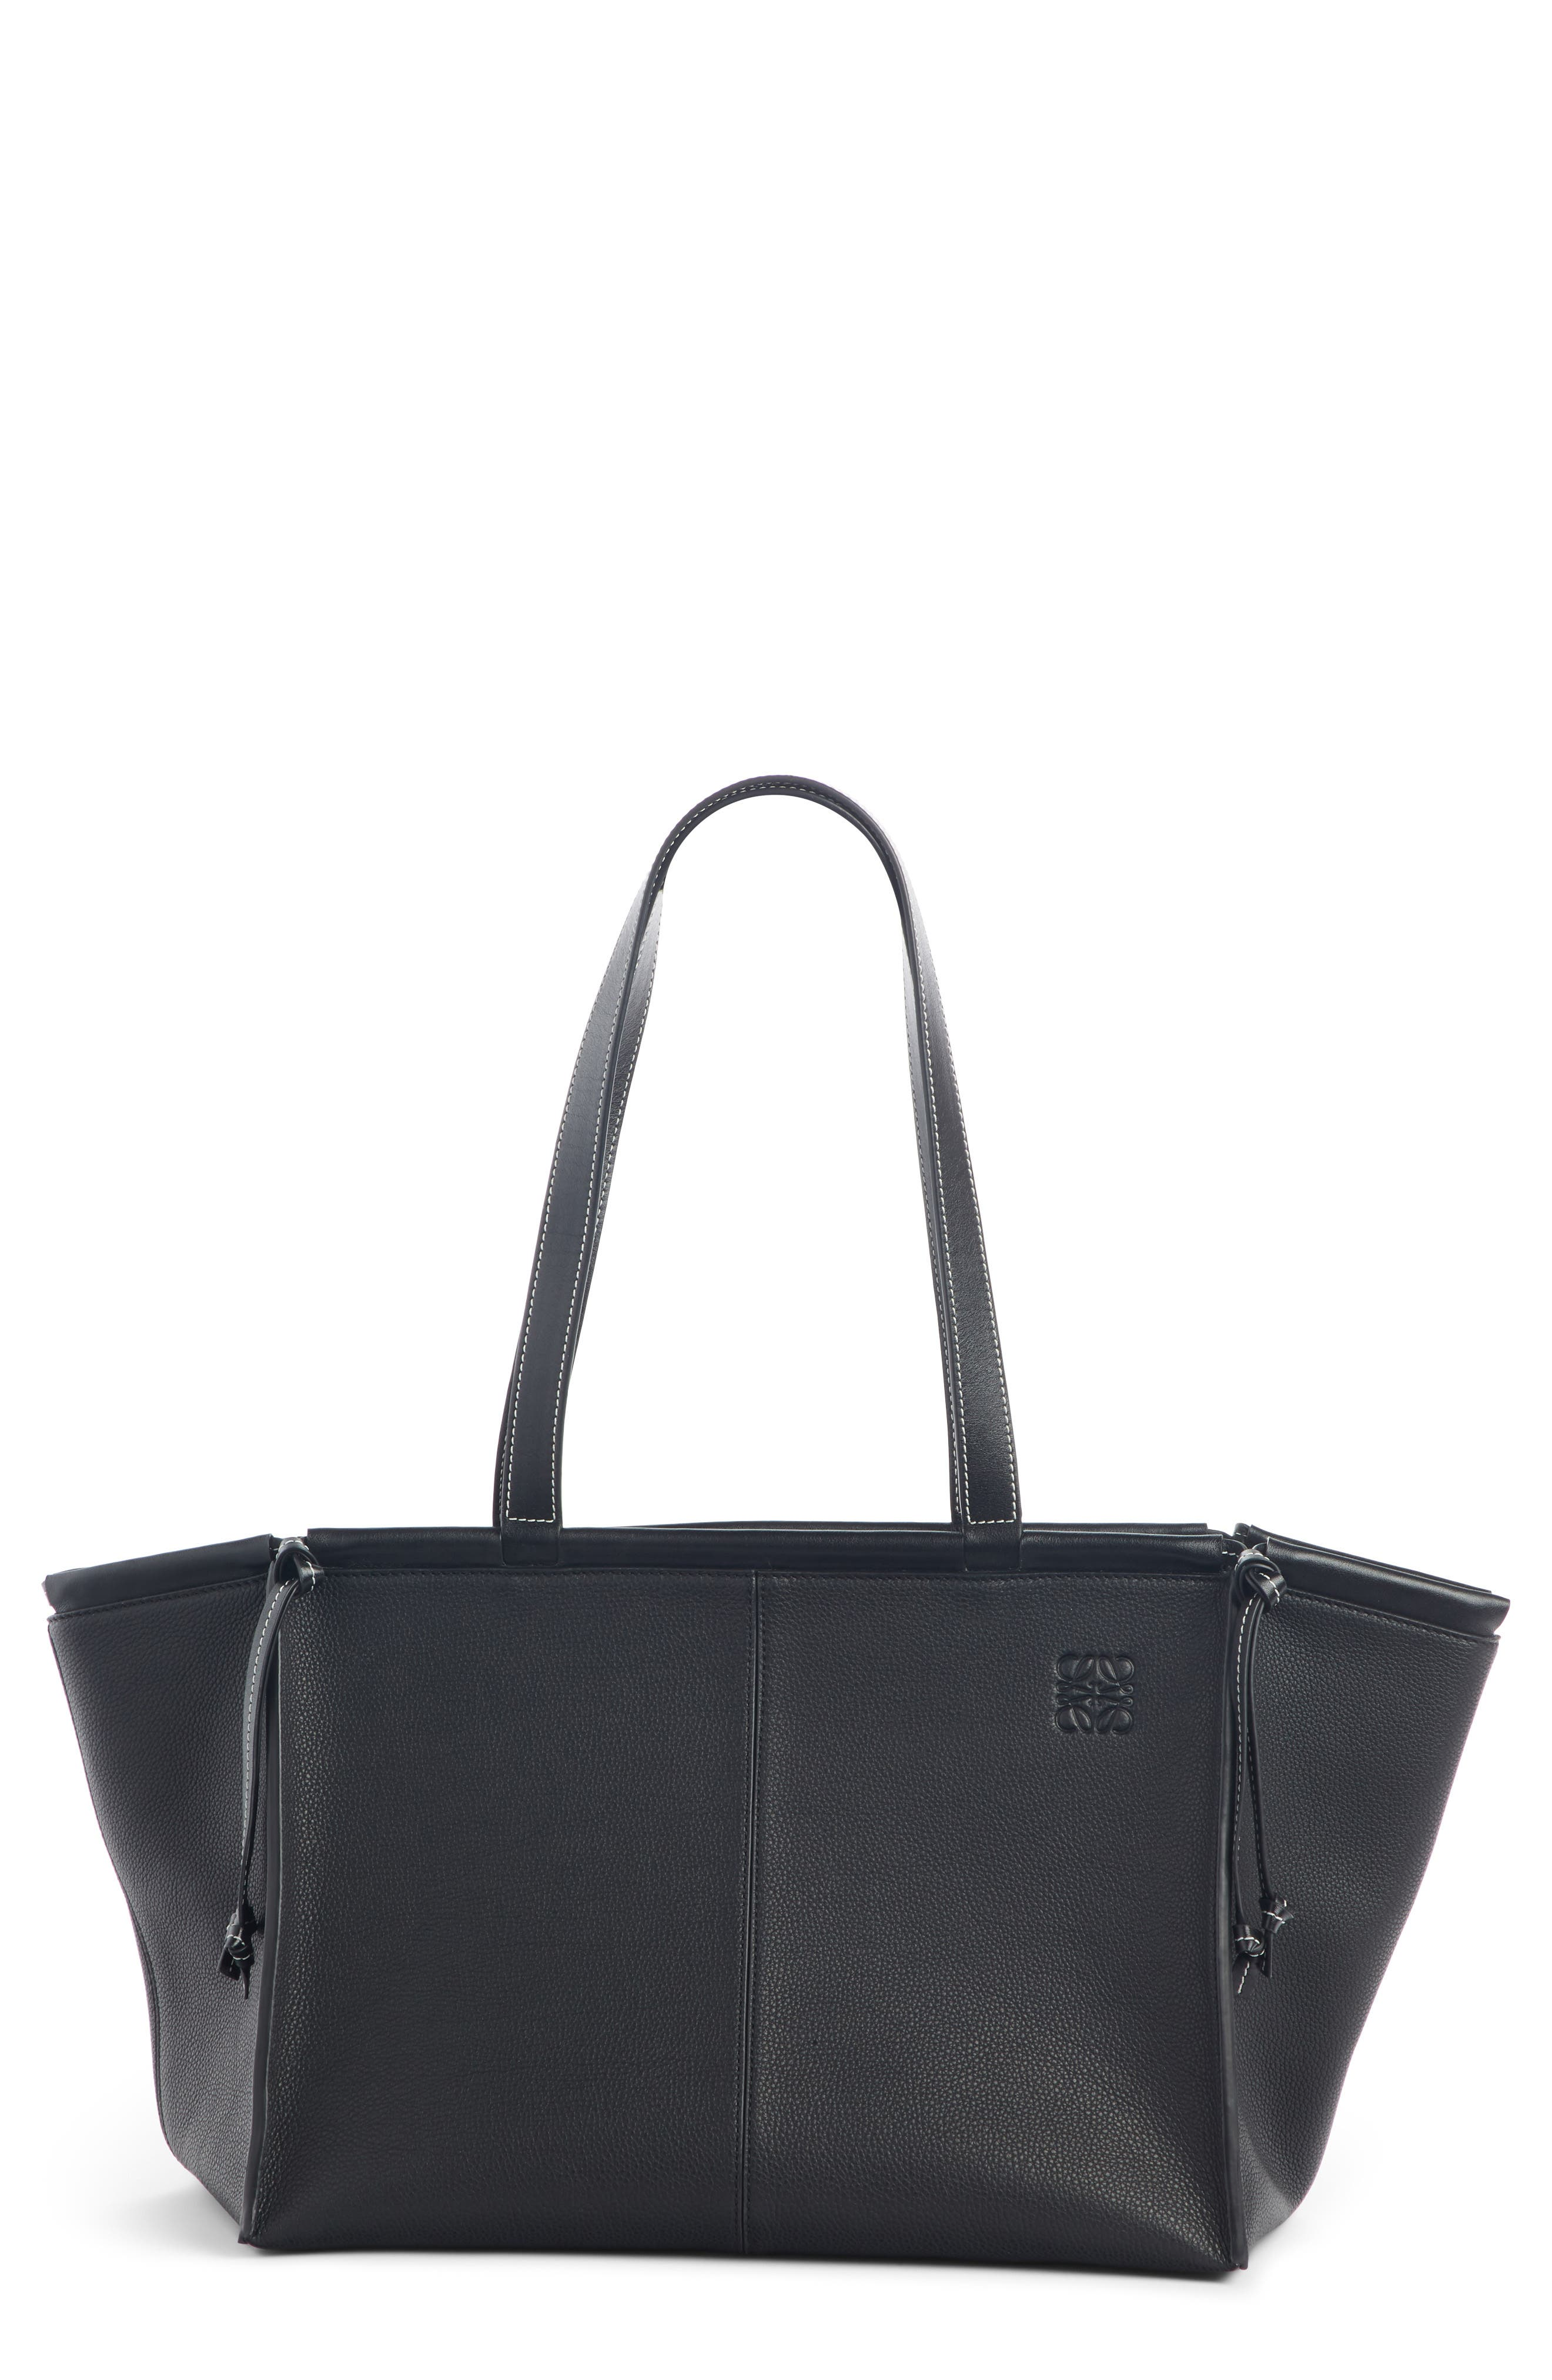 Loewe Cushion Leather Convertible Gusset Tote | Nordstrom